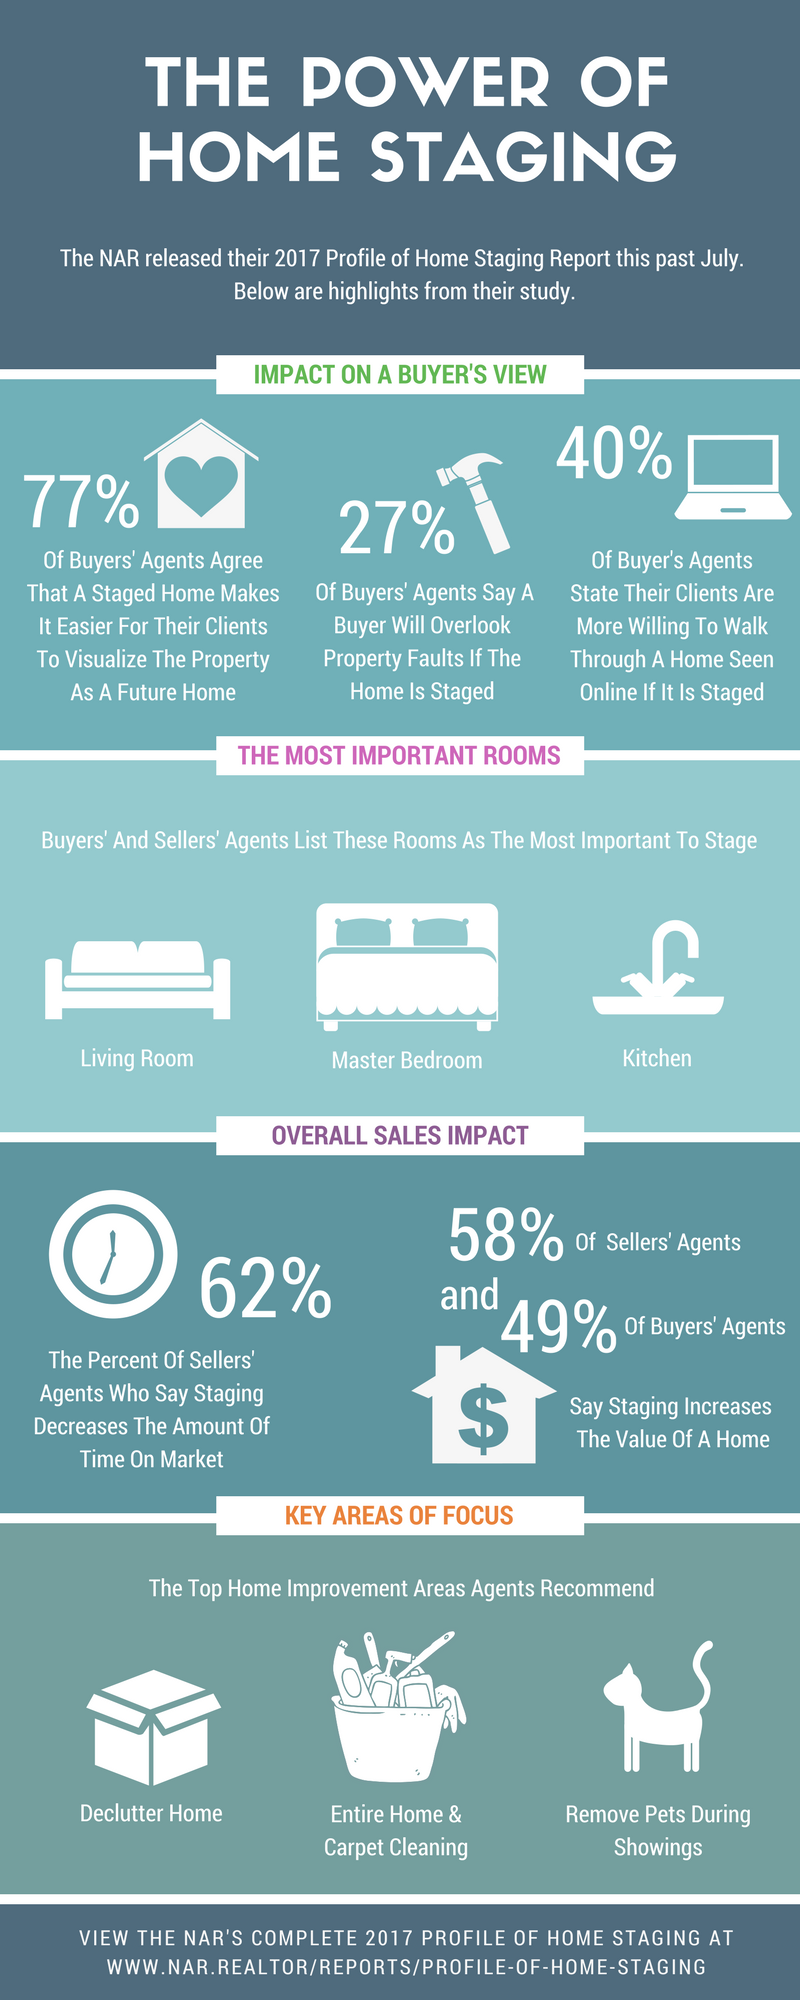 The Power of Home Staging - Megan Kumming